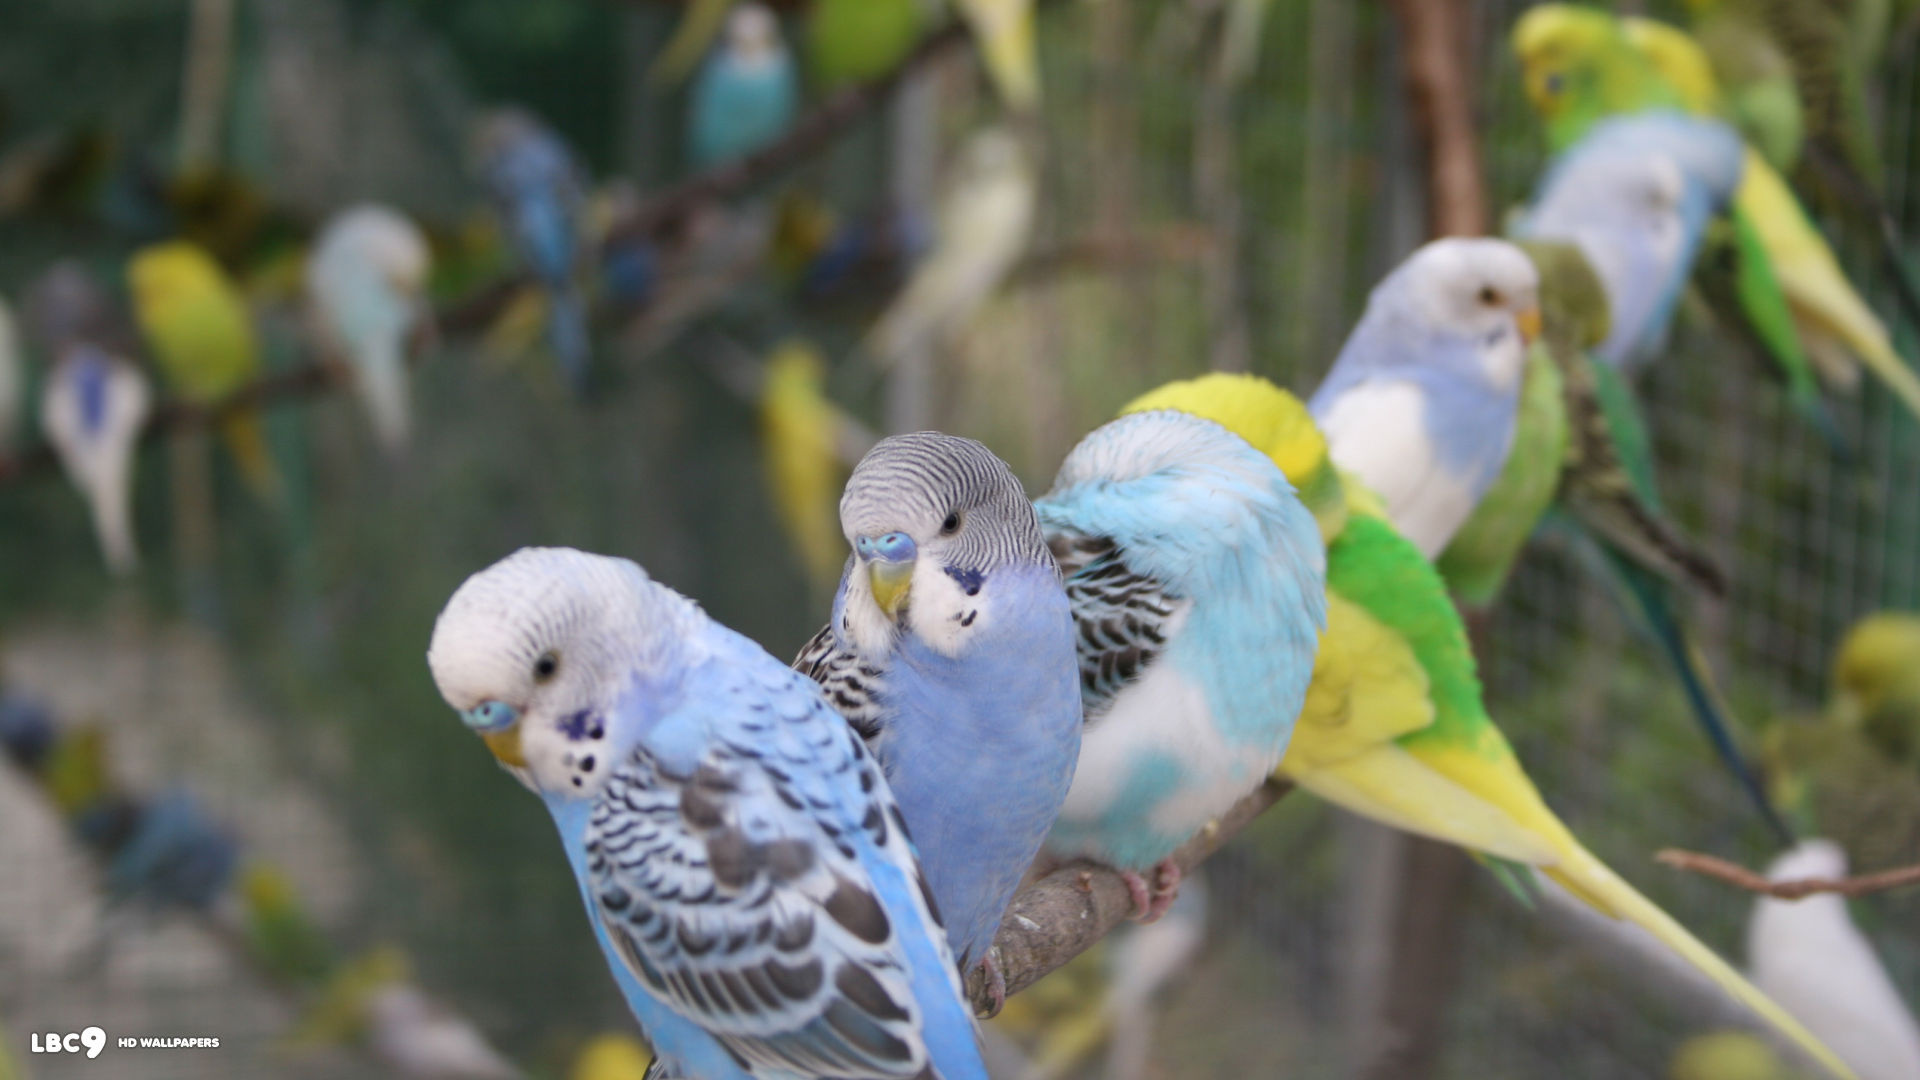 Cute Small Baby Wallpapers Hd Budgies Images Flock Of Budgies Hd Wallpaper And